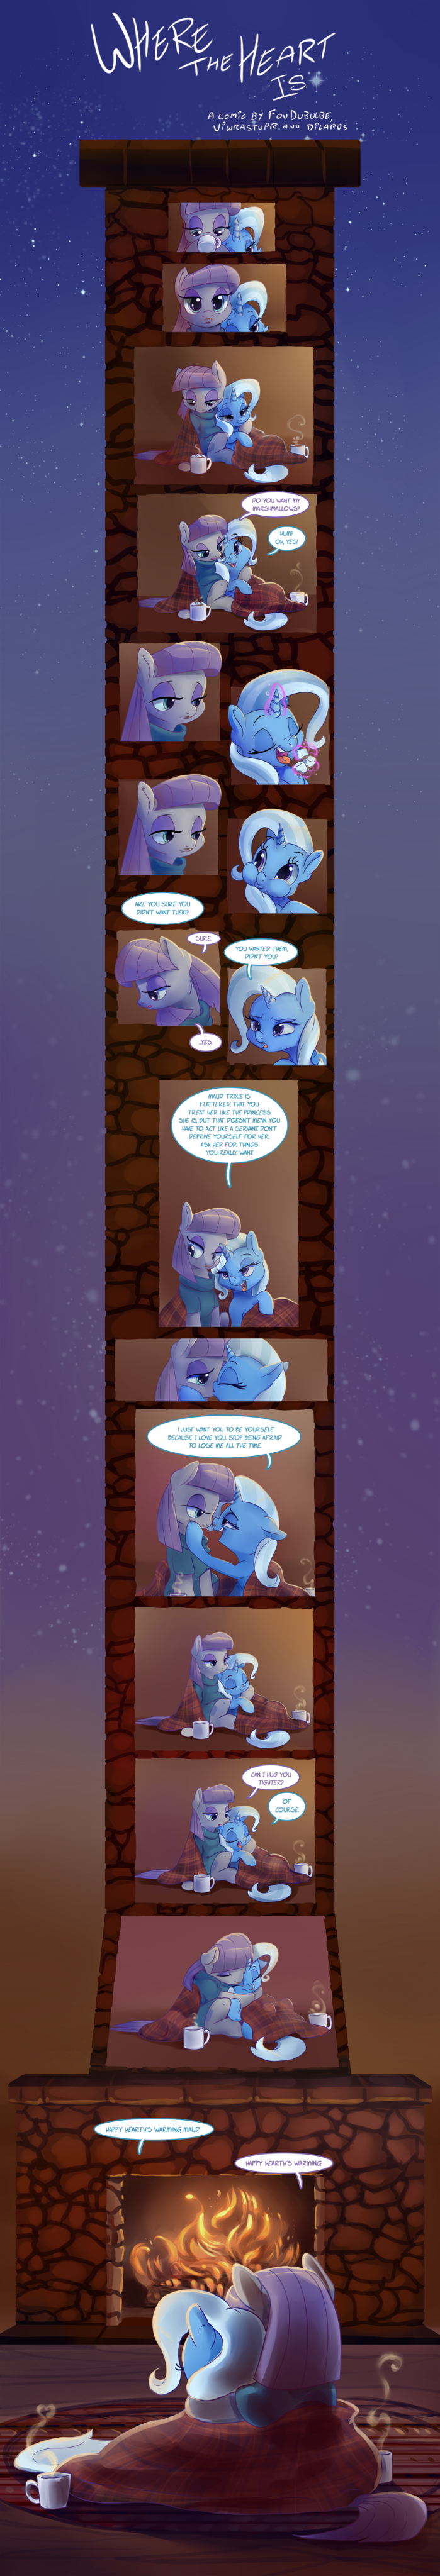 shipping the great and powerful trixie dilarus fou dubulbe meet the pones viwrastupr comic maud pie - 9109146112